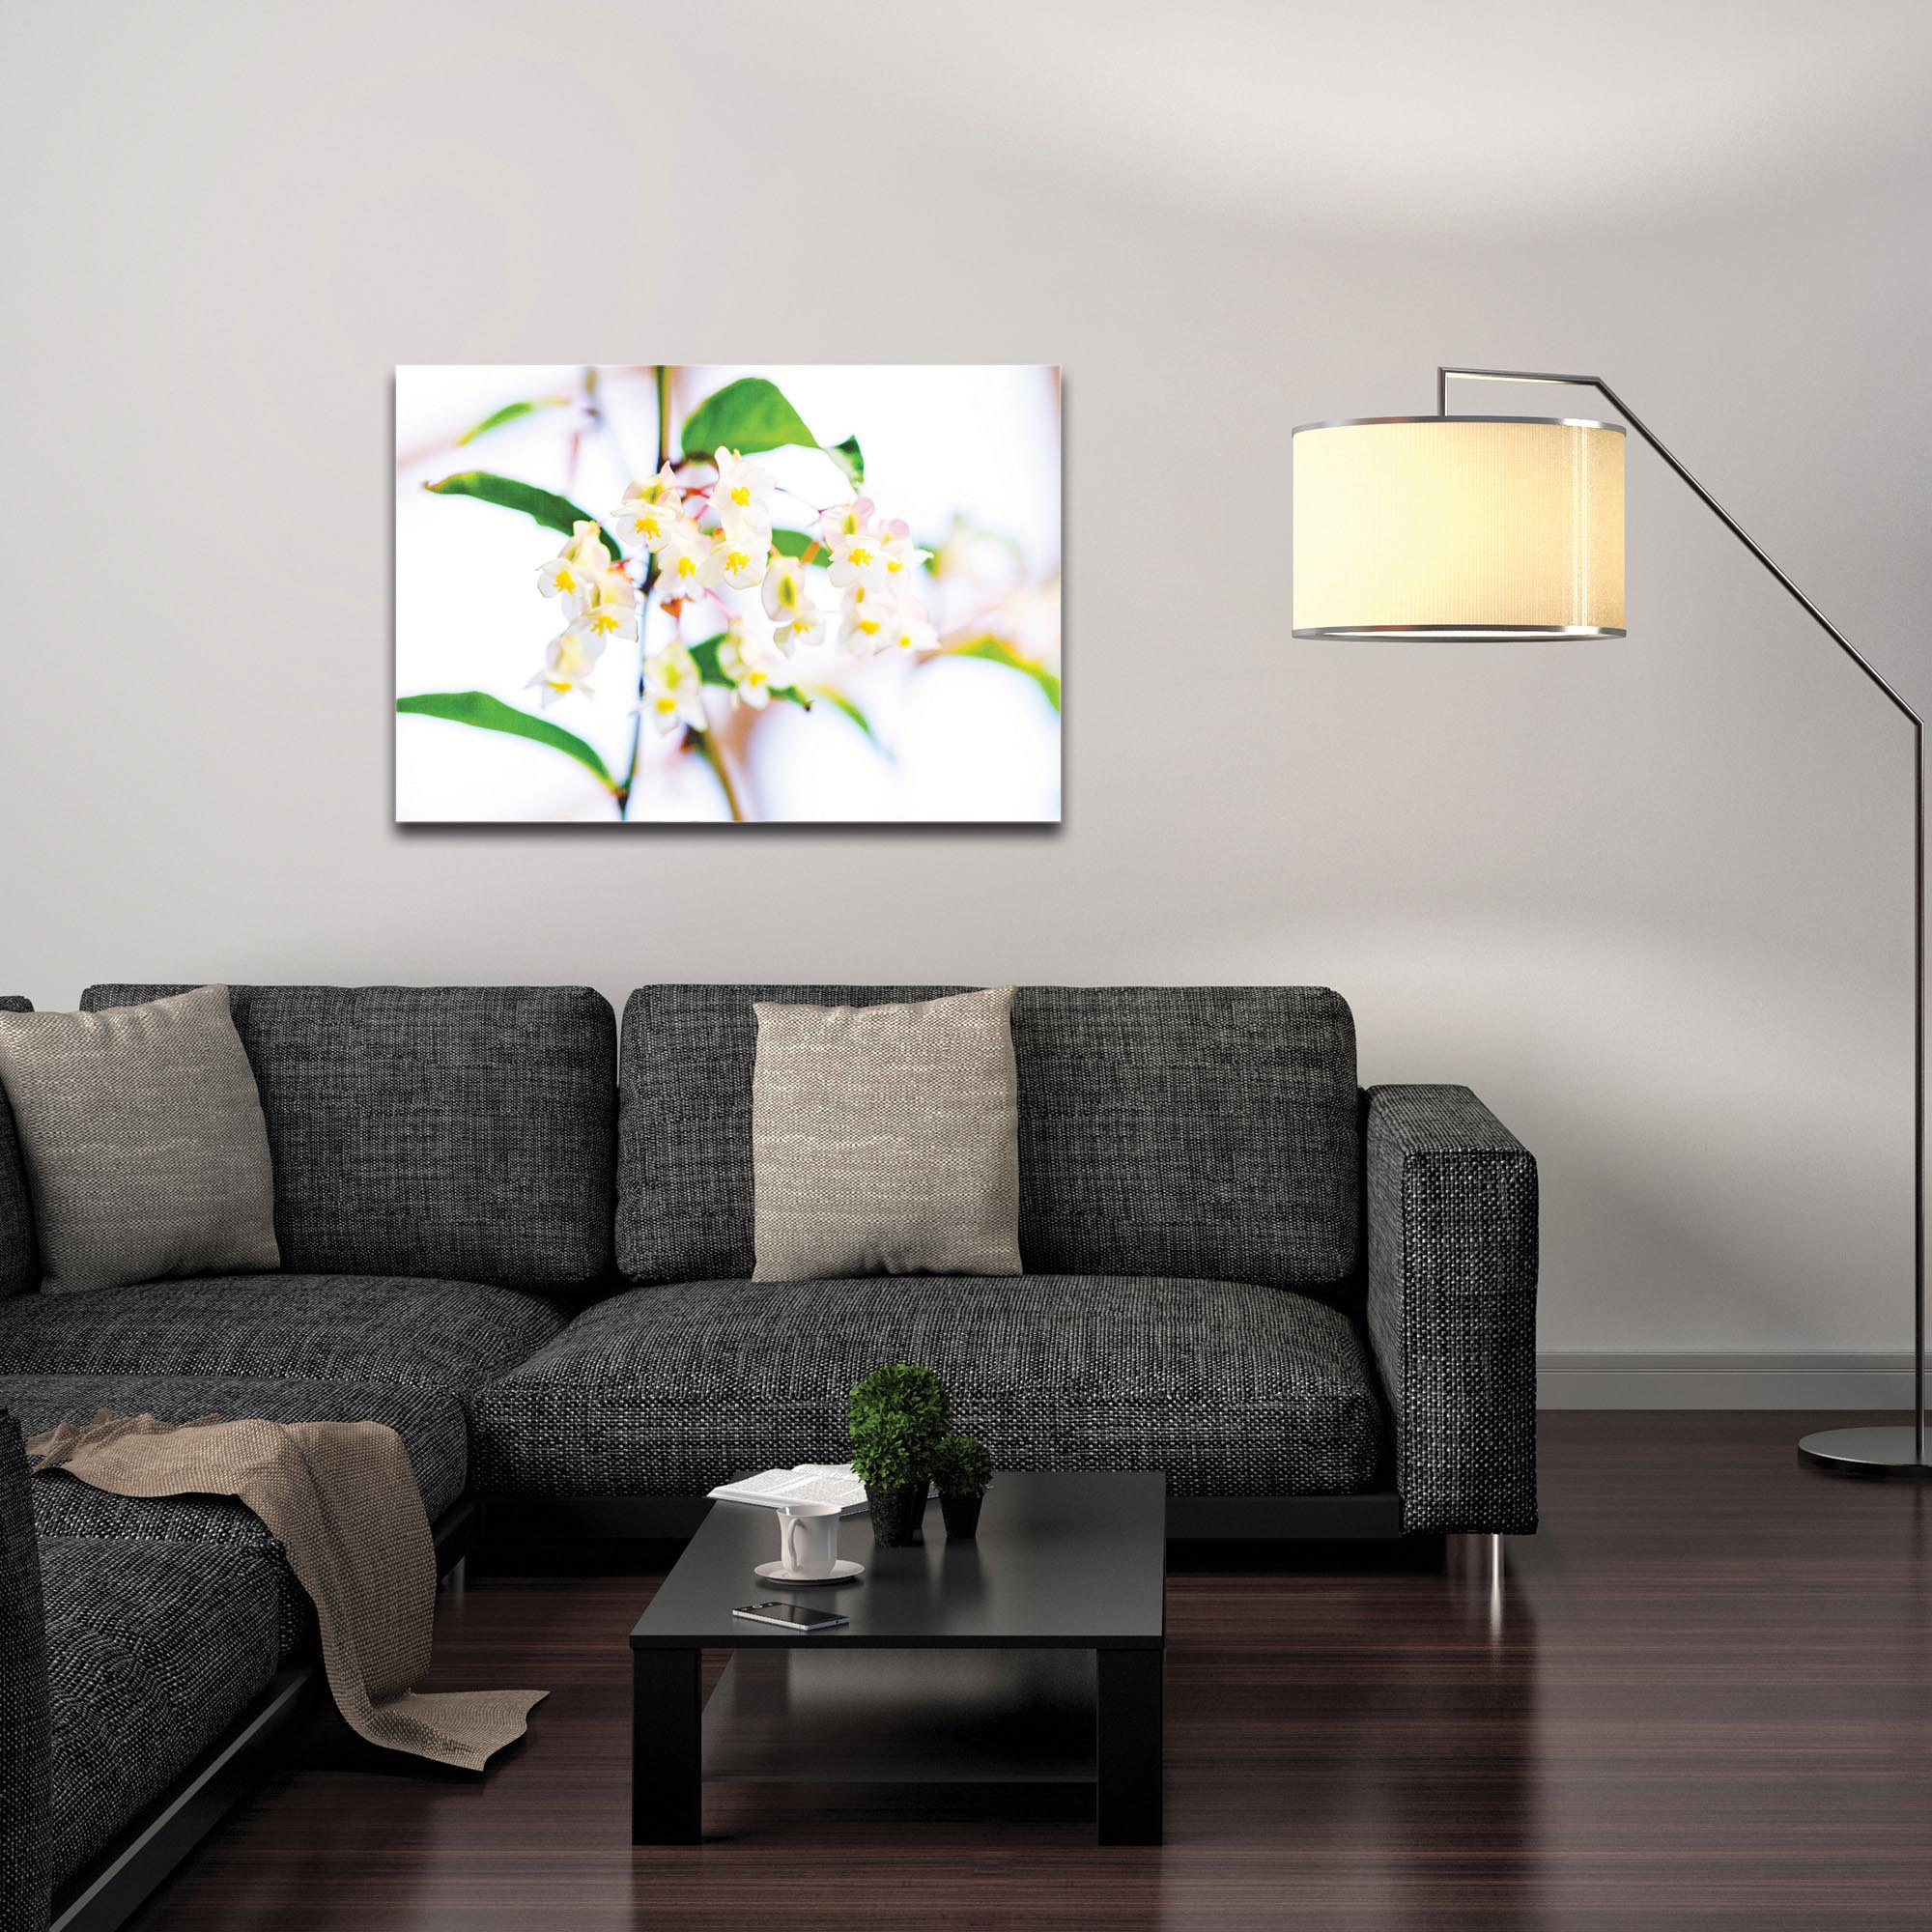 Nature Photography 'Popcorn in Bloom' - Flower Blossom Art on Metal or Plexiglass - Image 3